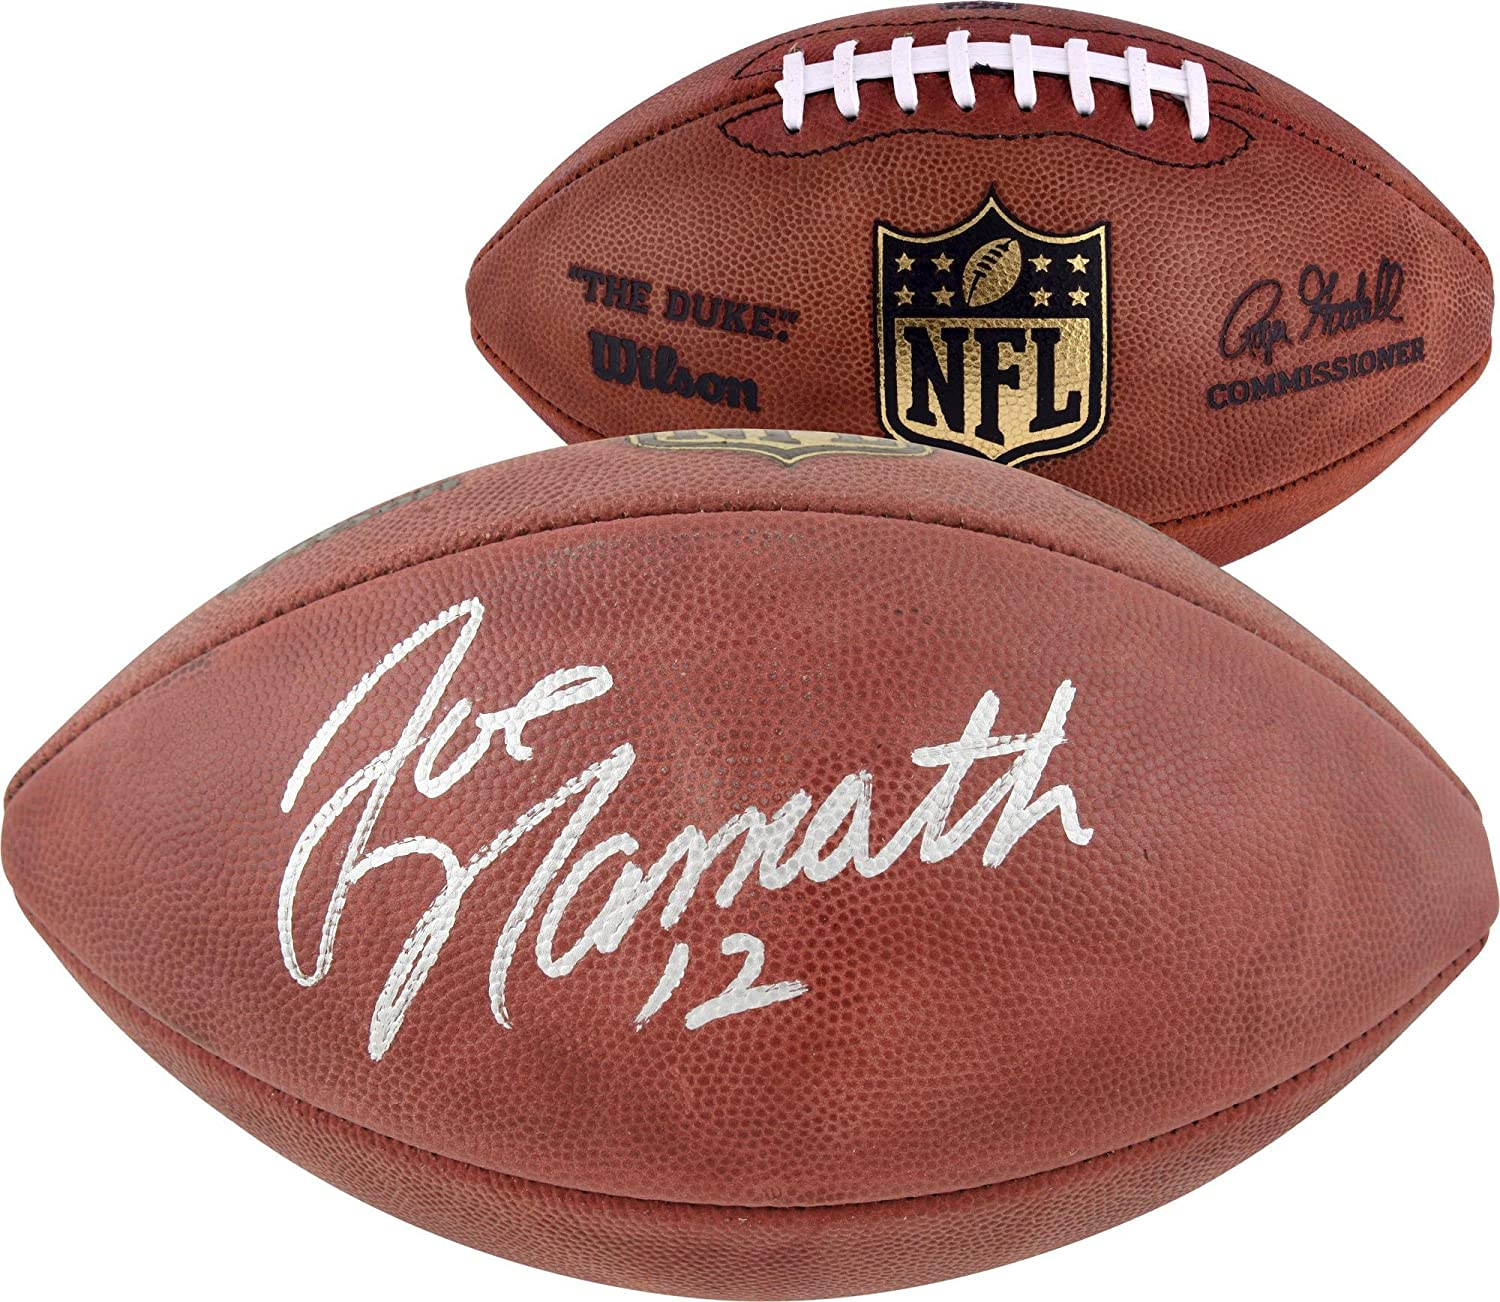 New York Jets Joe Namath Autographed Football - Fanatics Authentic Certified - Autographed Footballs